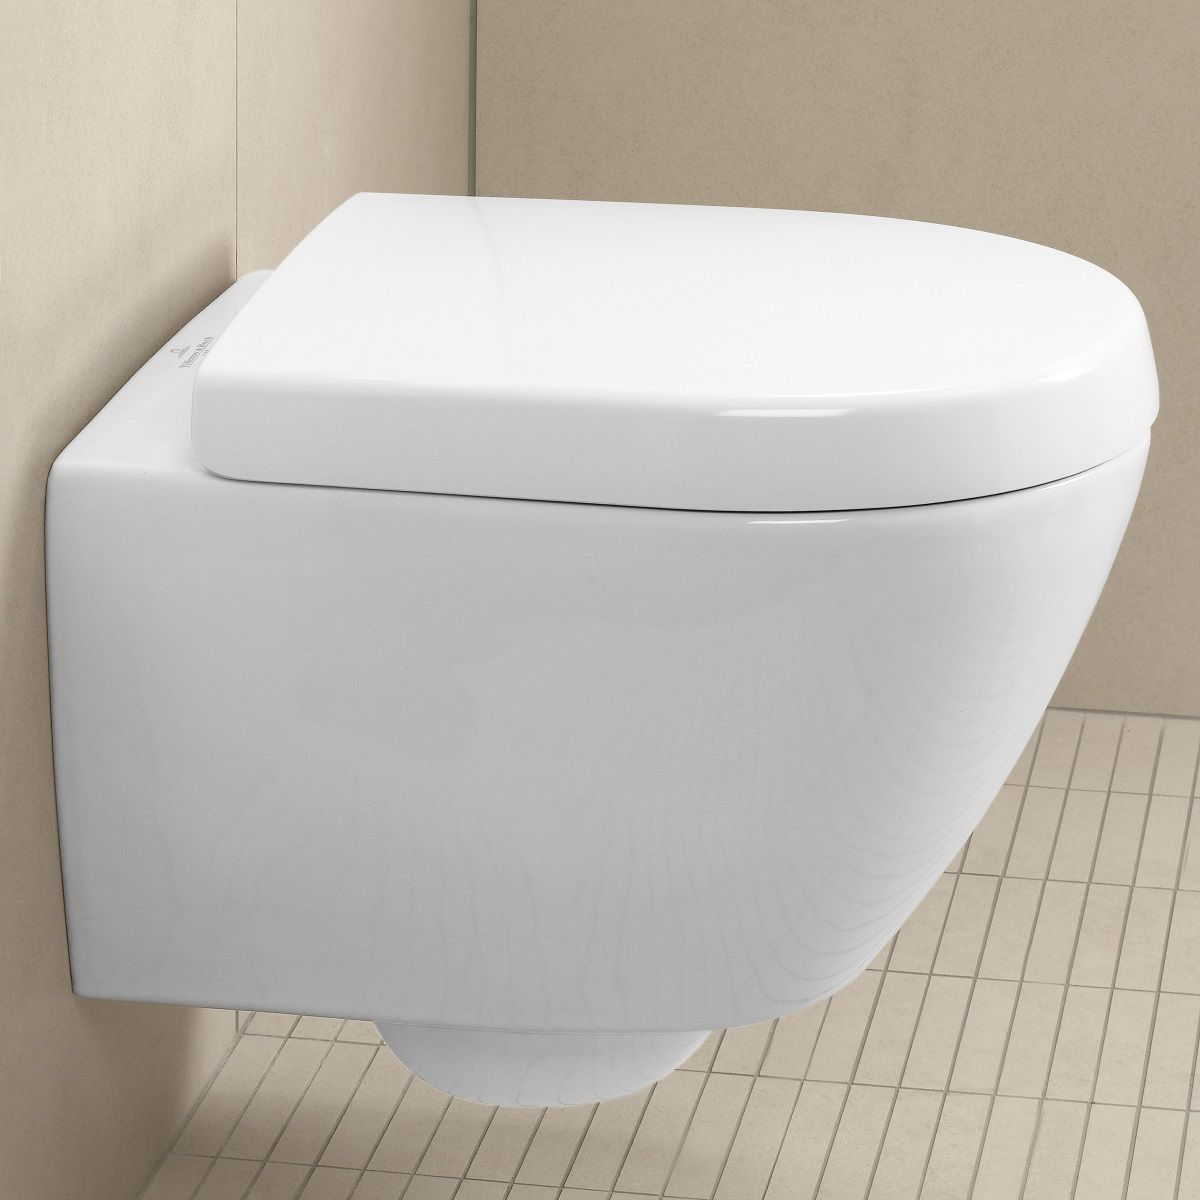 Villeroy & Boch Subway 2.0 Compact Wall Hung WC